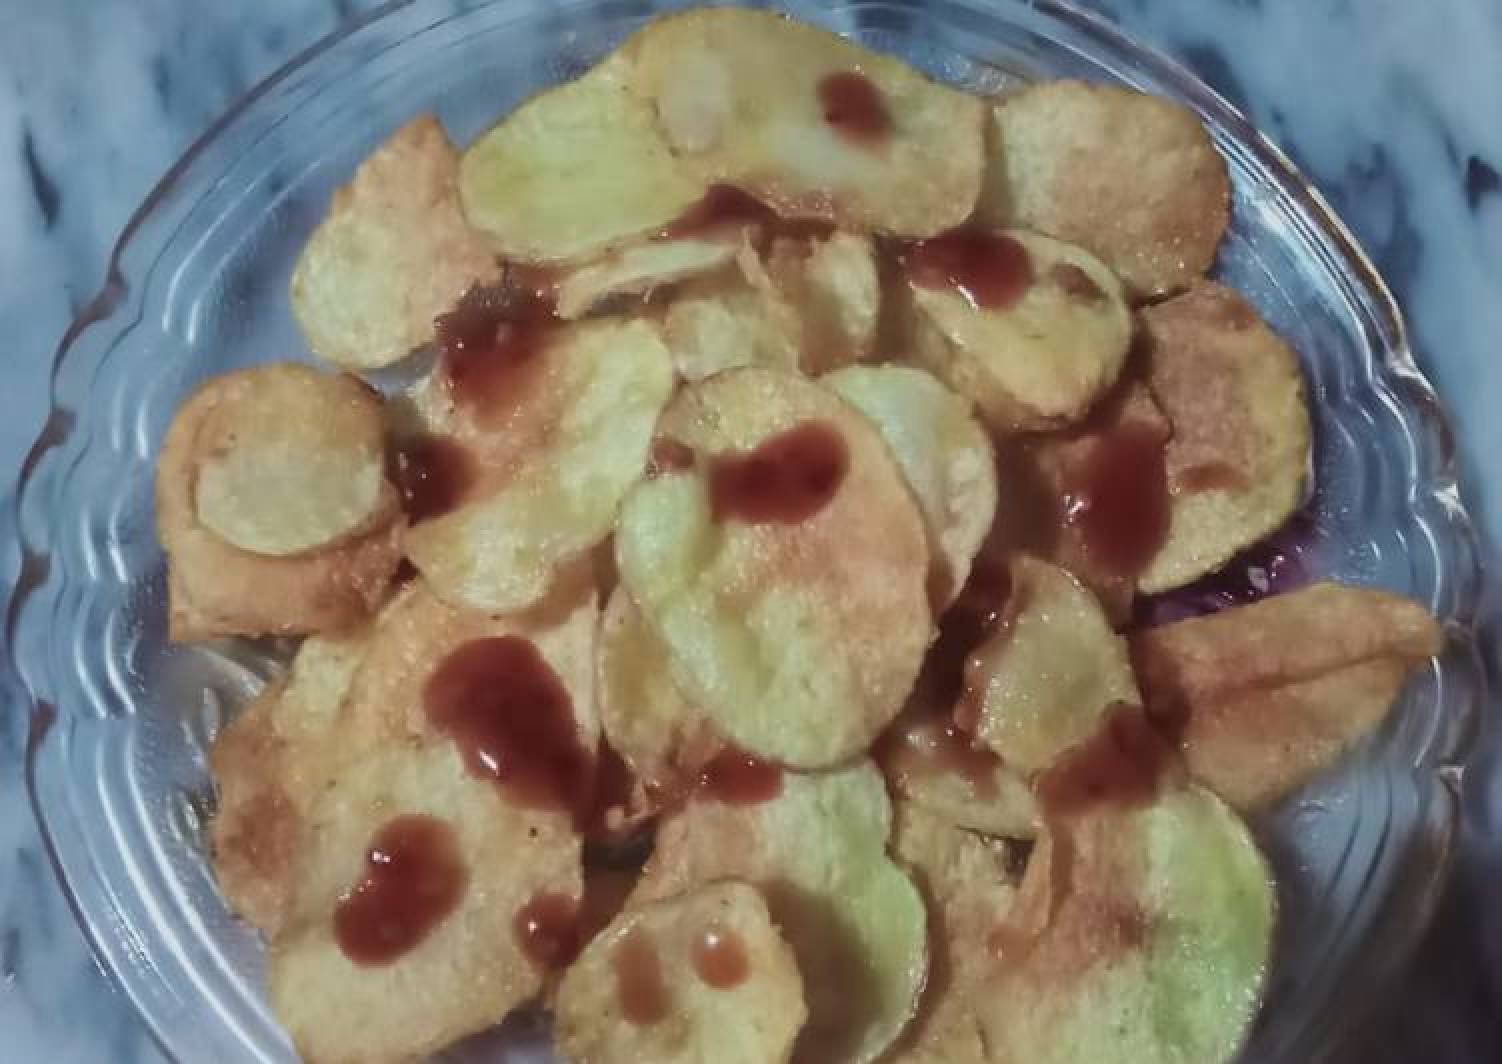 Lays style chips